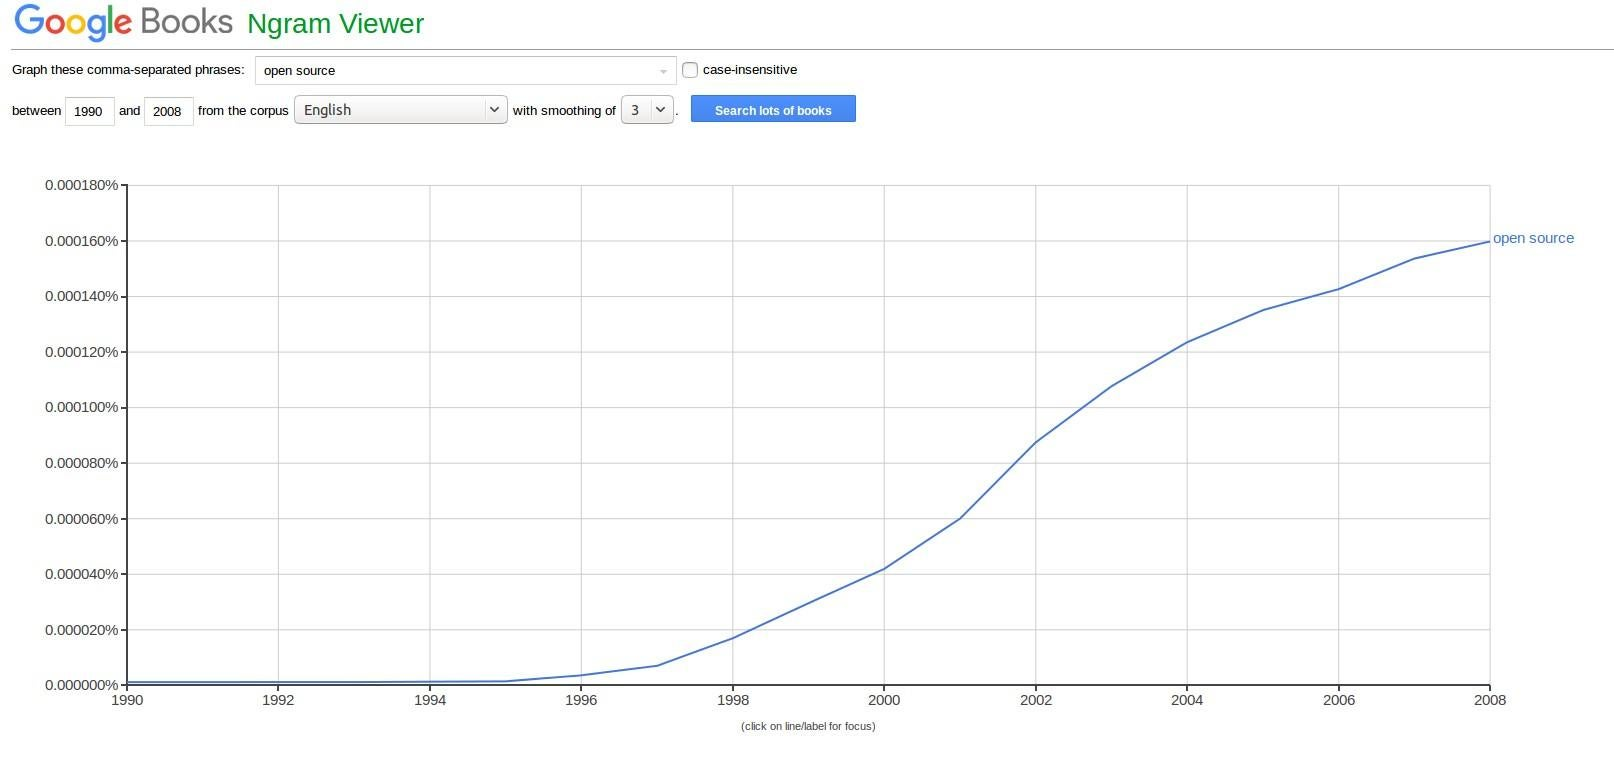 Google Books Ngram viewer trend for open source